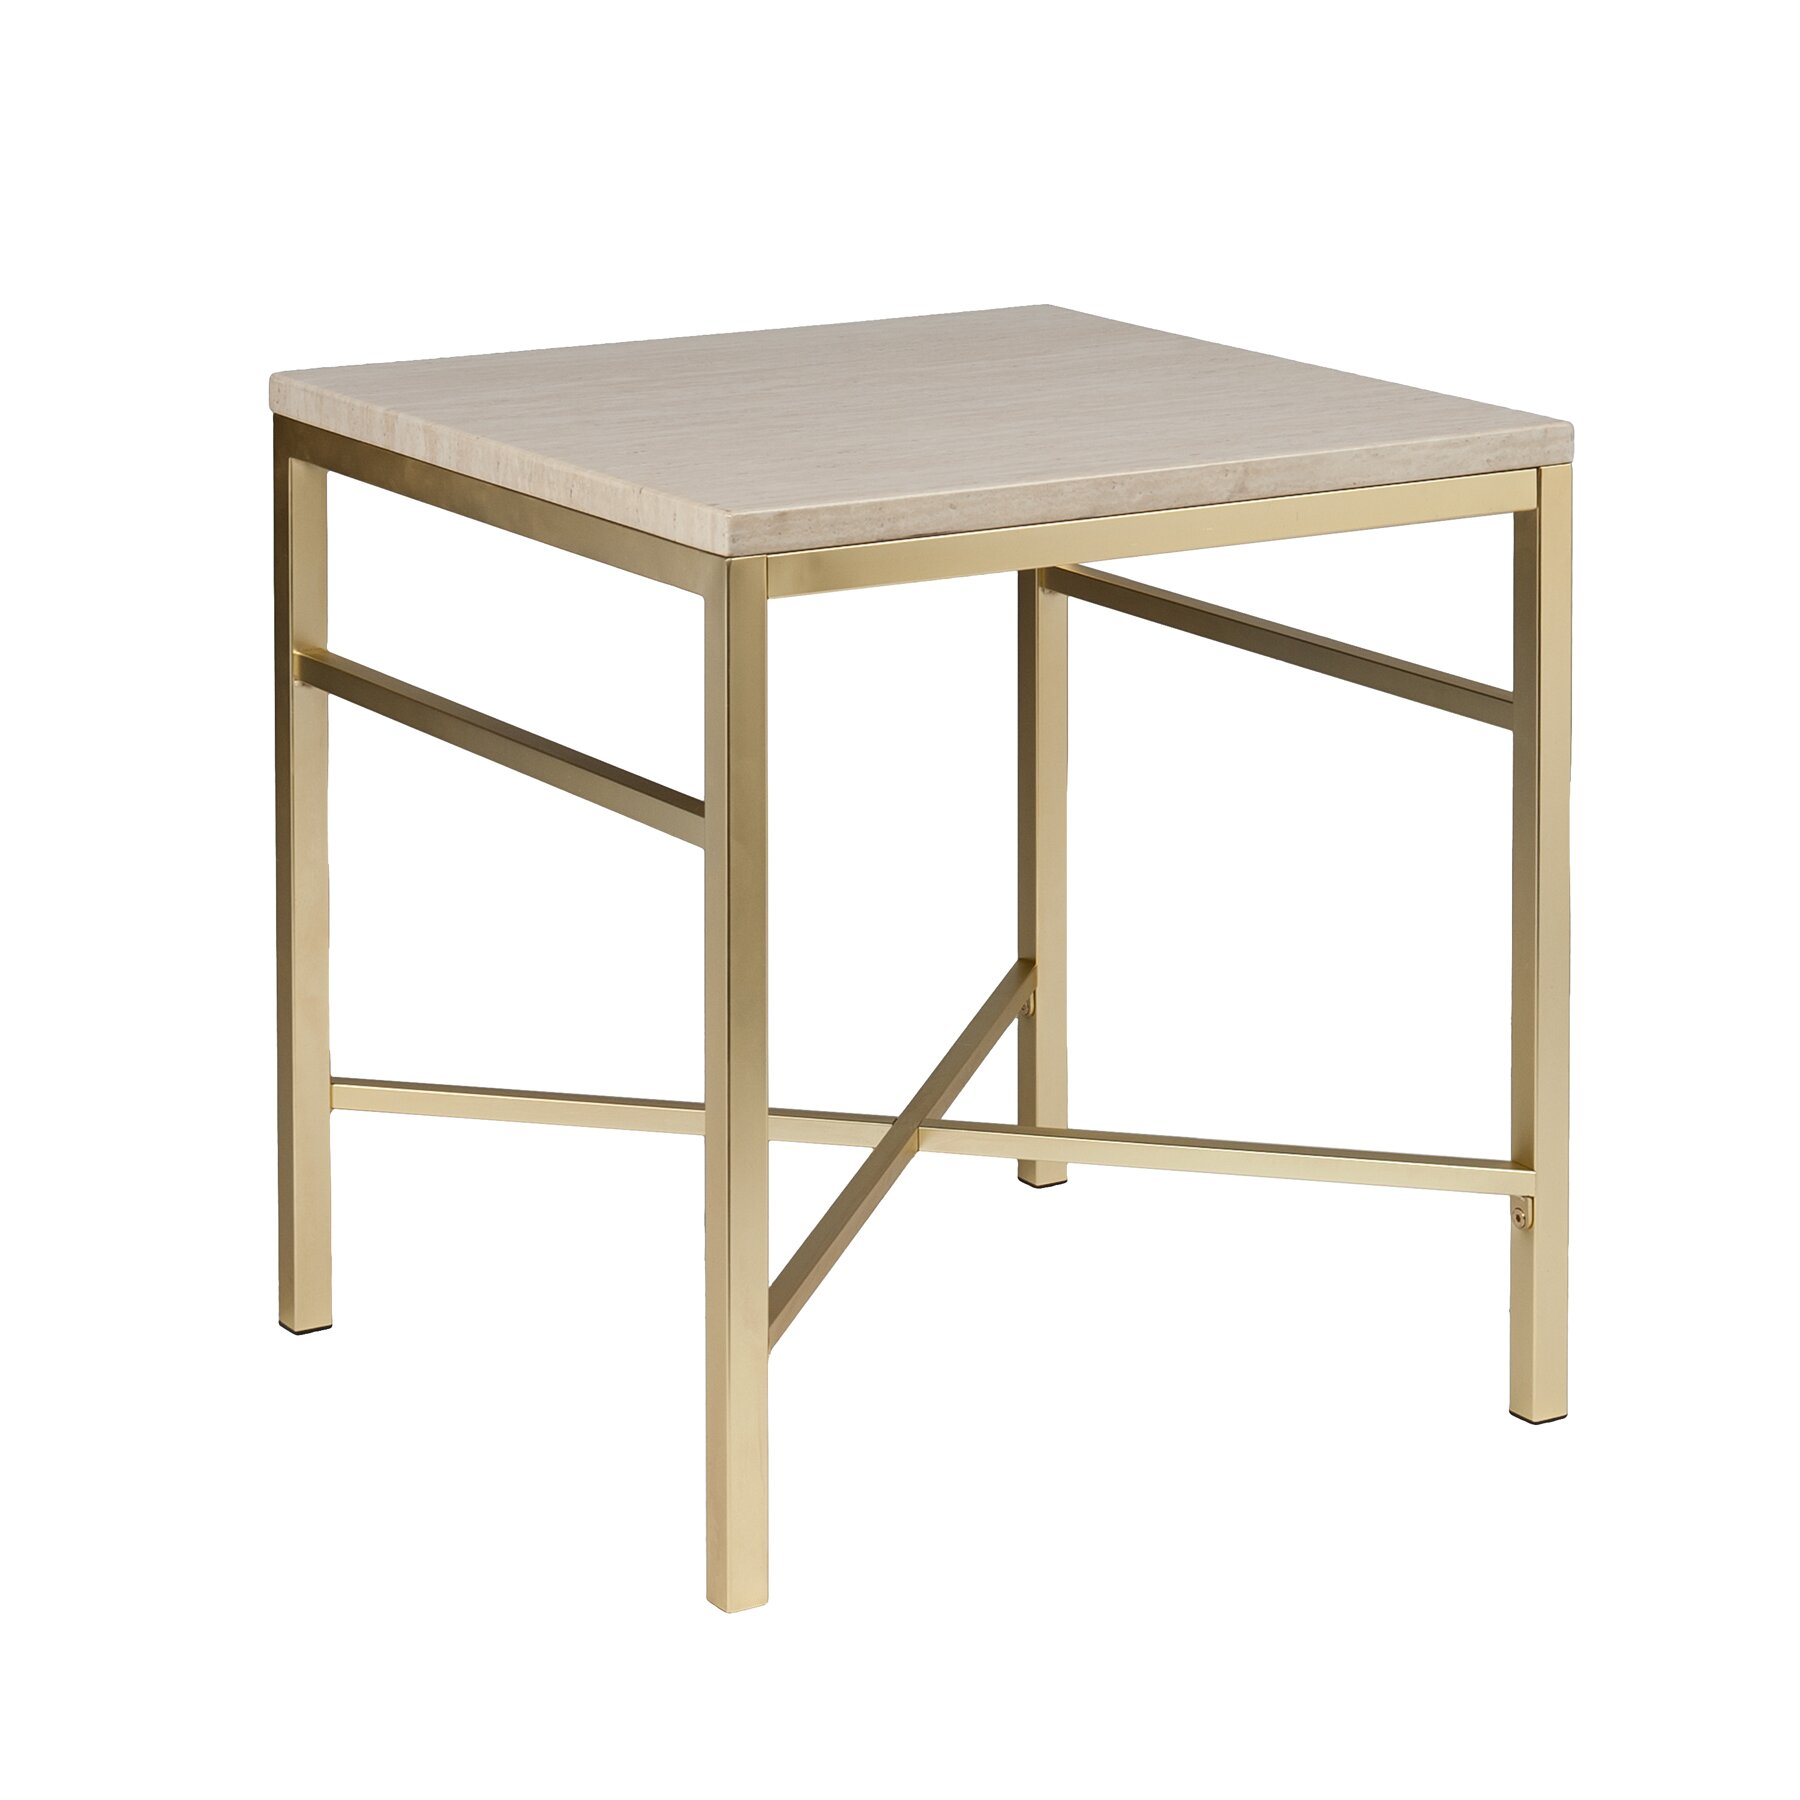 Zipcode design lourdes faux stone end table in travertine for Table exterieur lourde